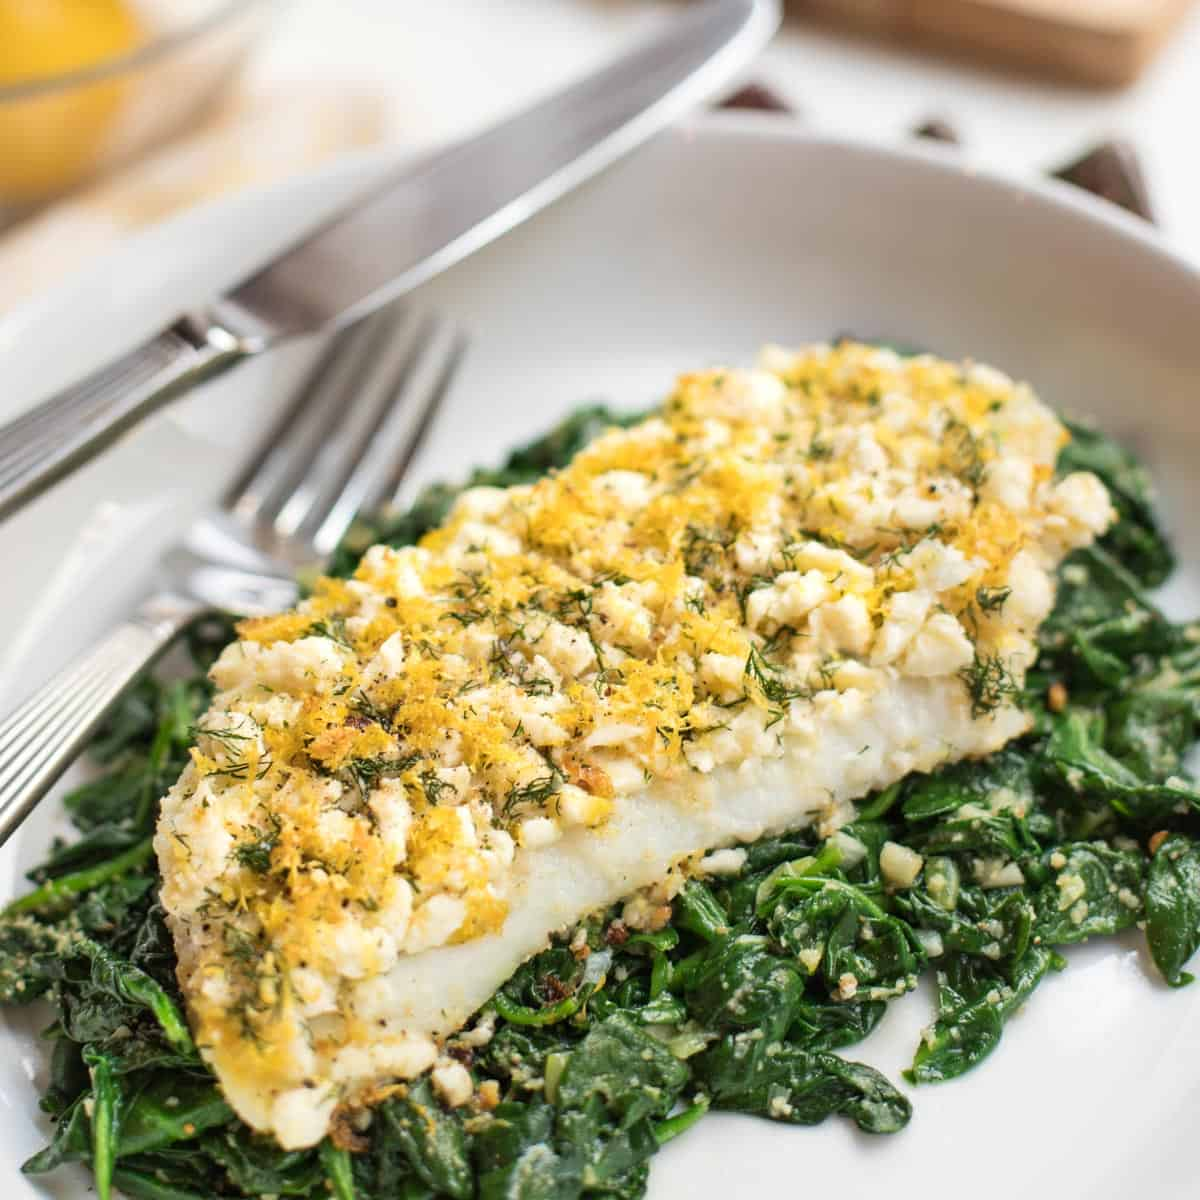 Roasted-cod-feta-lemon-dill-on-spinach-recipe-seasonedkitchen.com